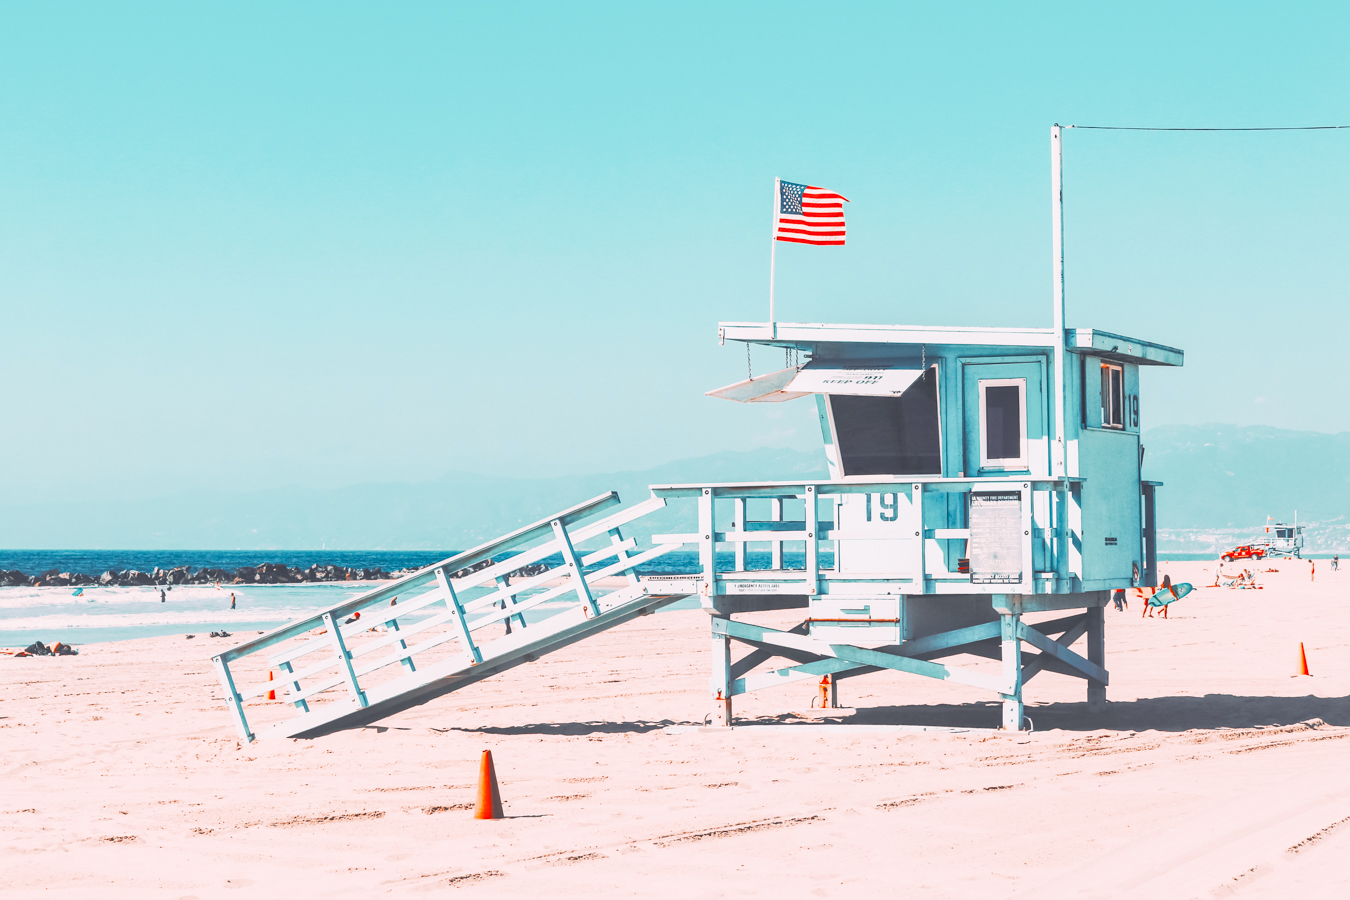 Blue Lifeguard in Los Angeles